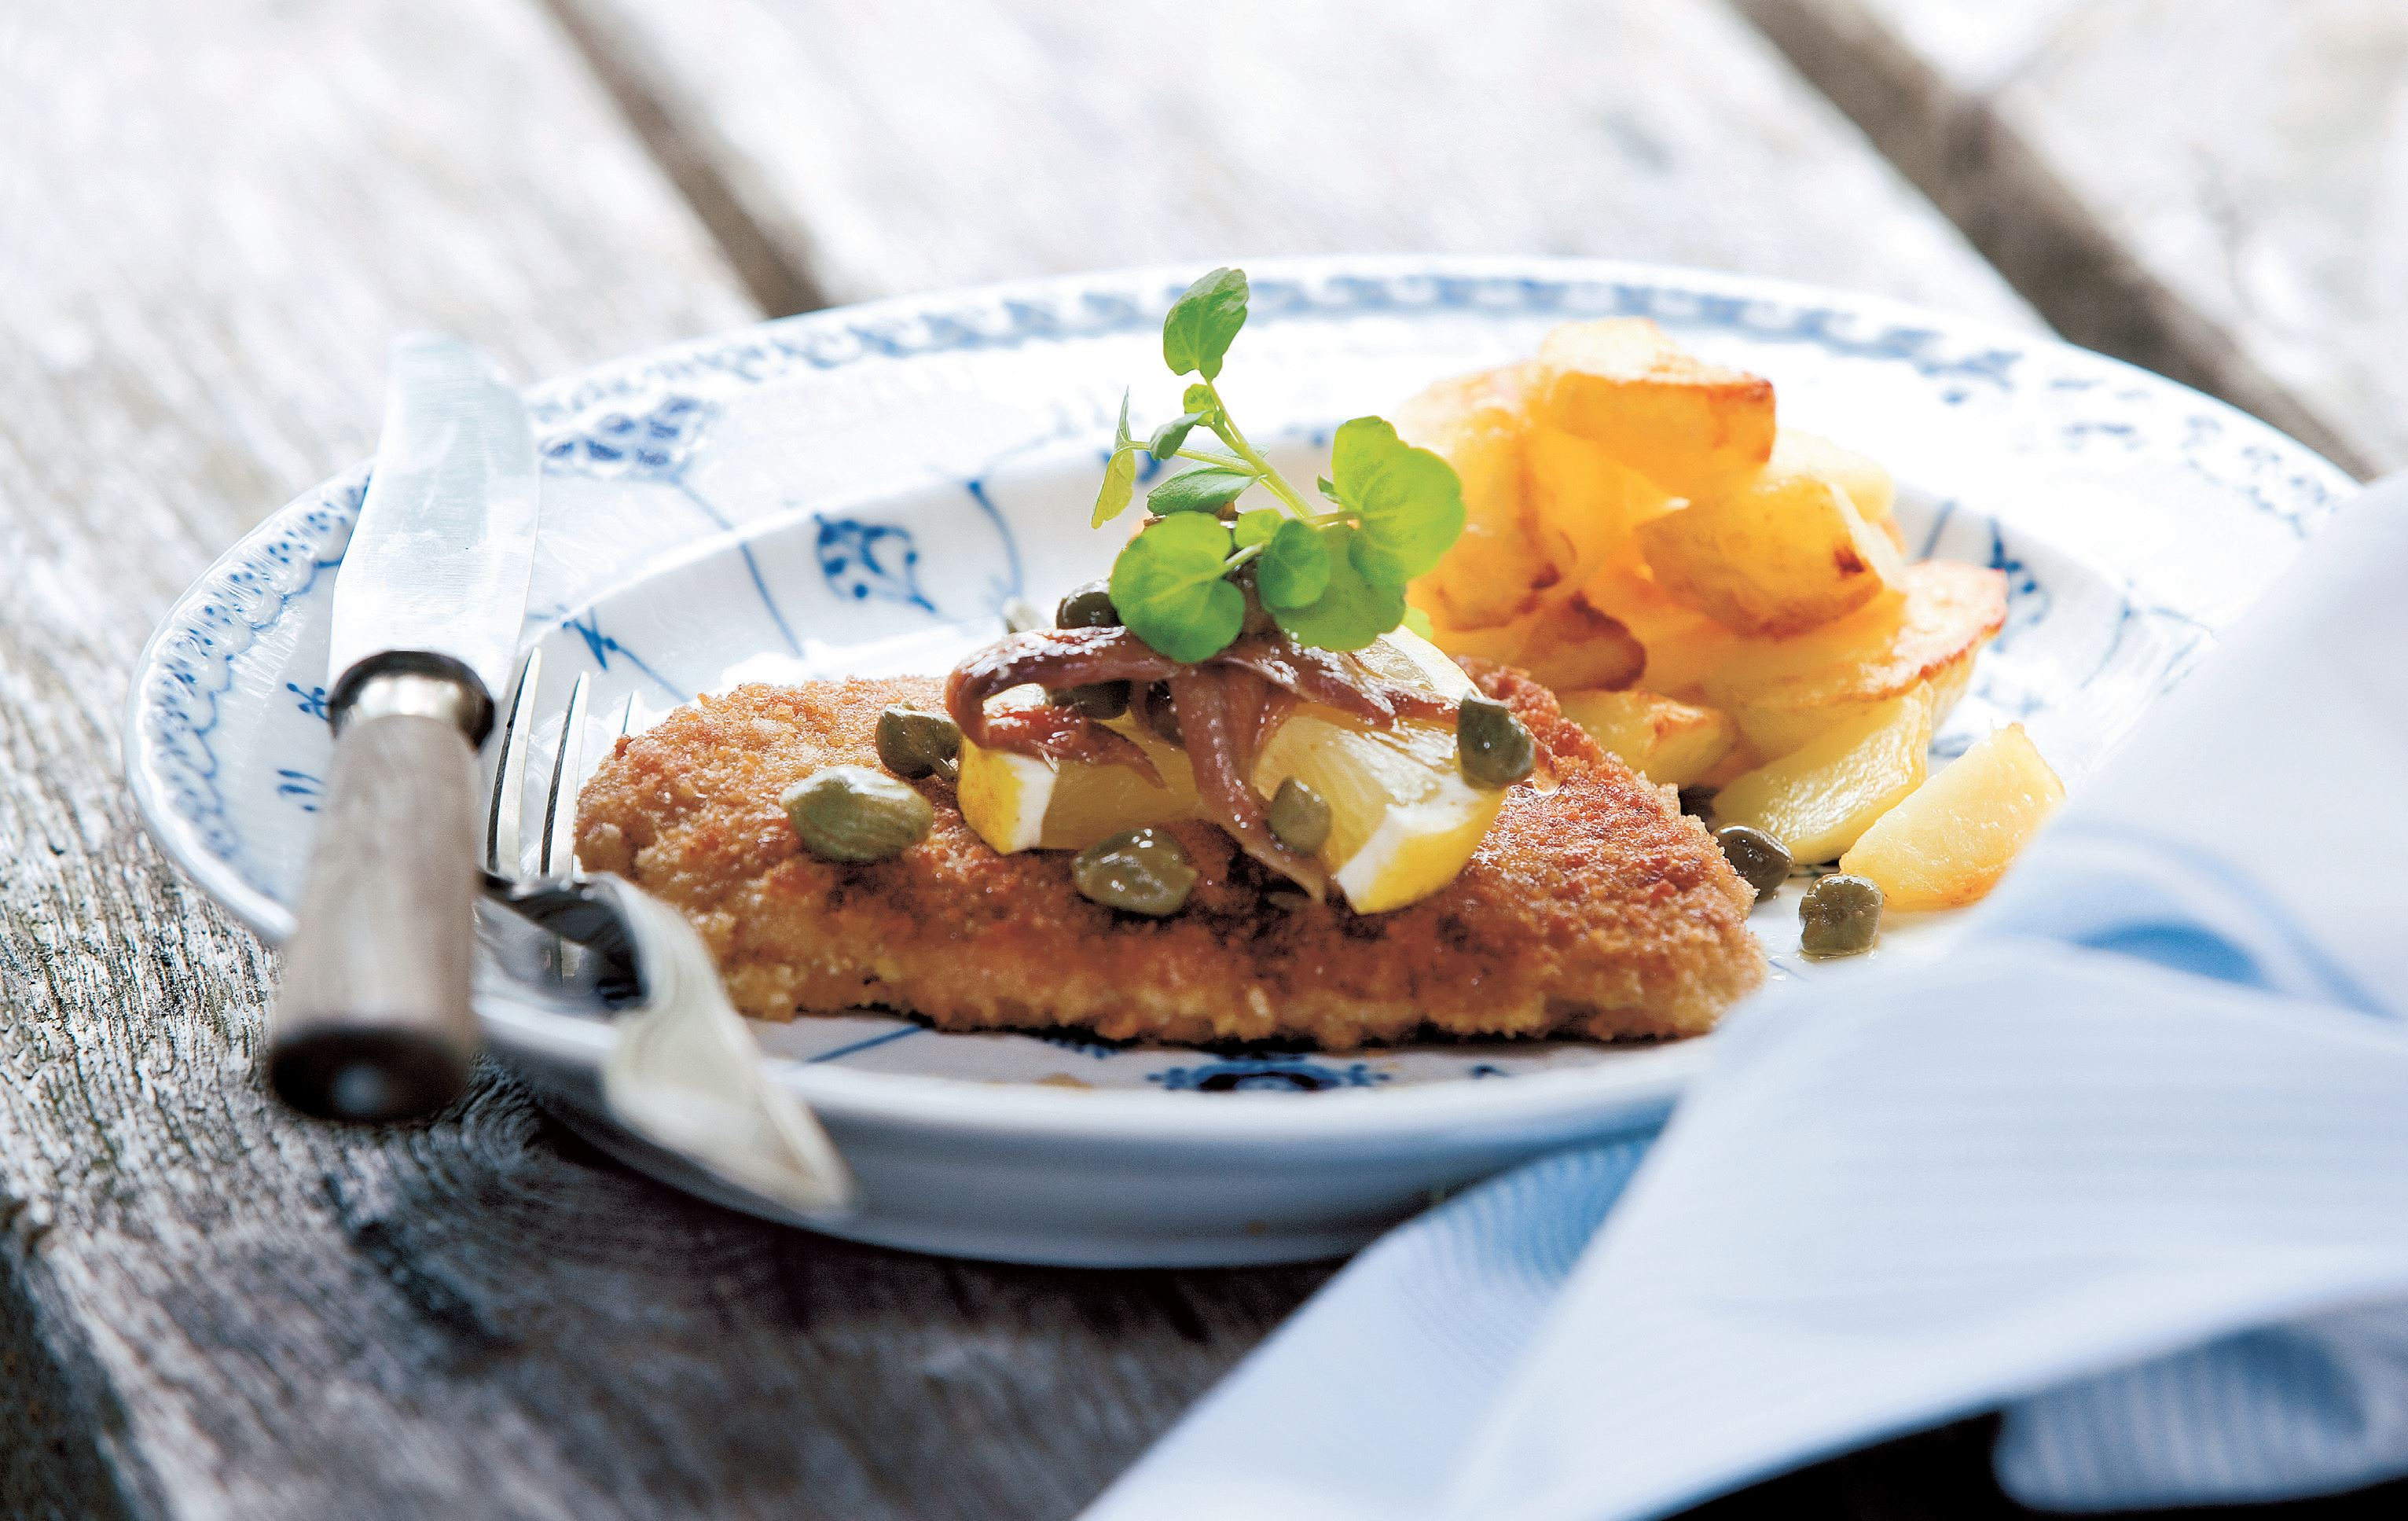 Wienerschnitzel with braised potatoes